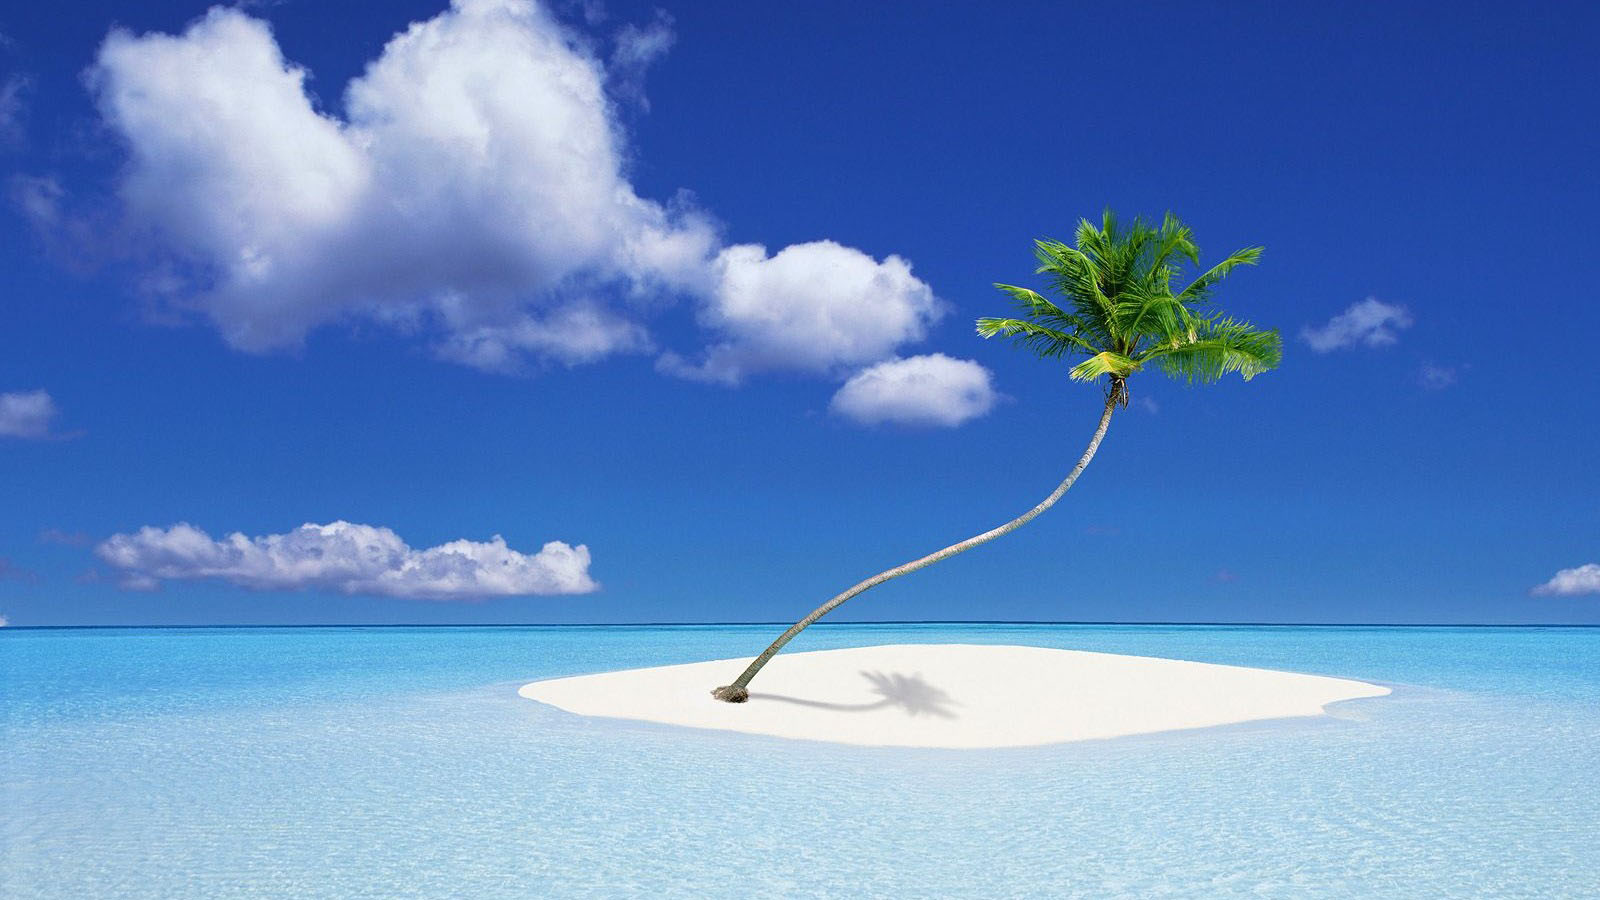 island beach scenery wallpaper